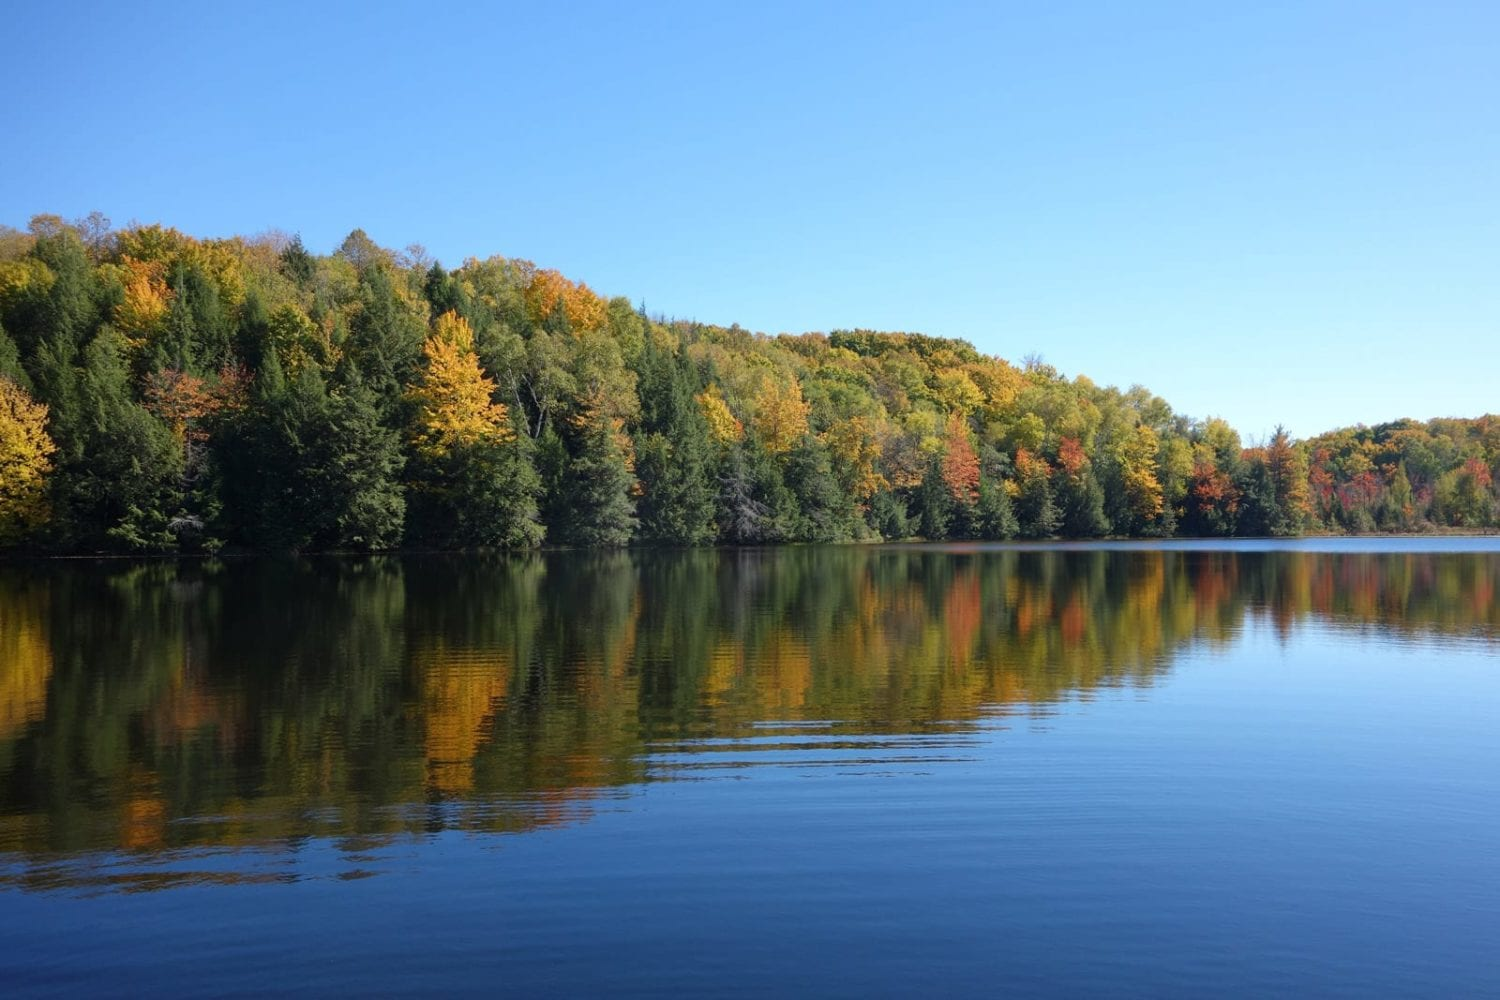 view of trees with fall foliage from calm lake